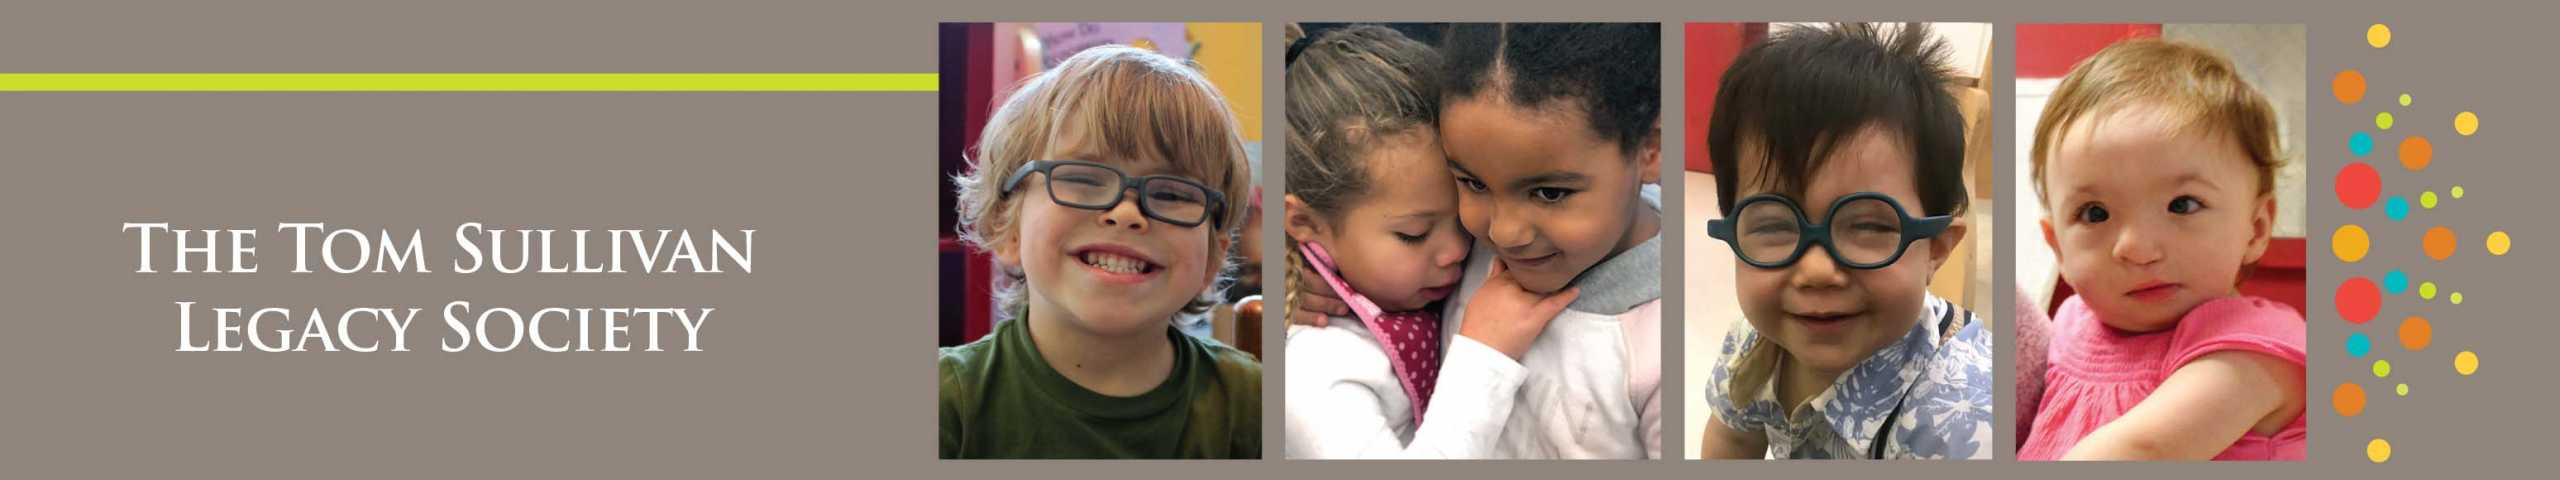 Tom Sullivan Legacy Society. Four images of smiling preschoolers who are visually impaired.